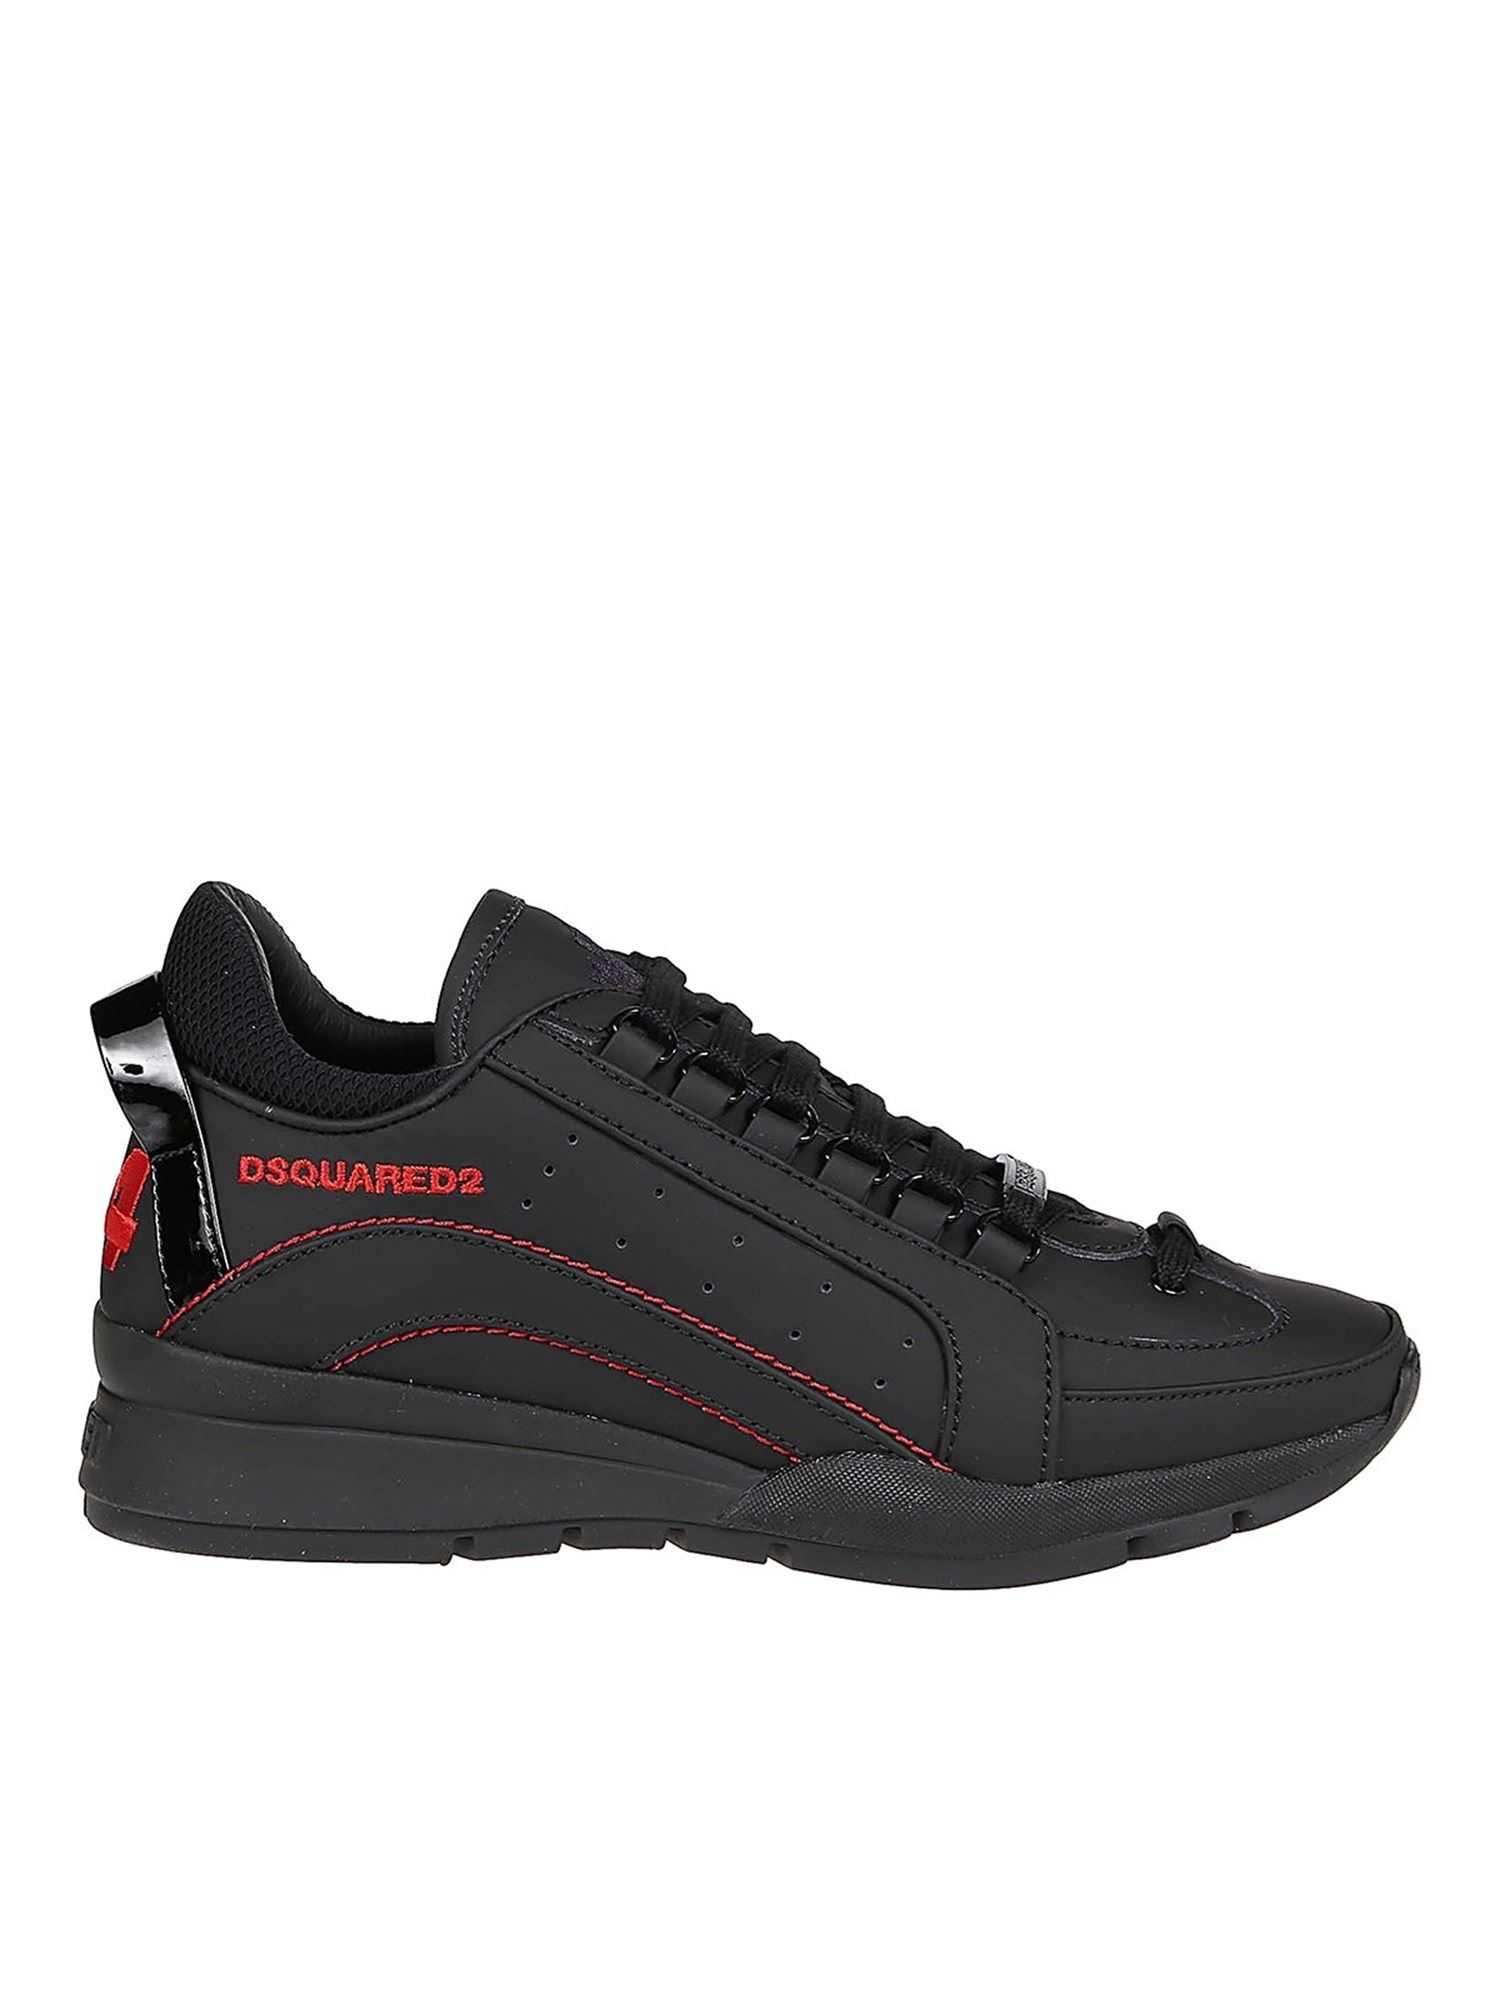 Dsquared2 Leathers 551 SNEAKERS IN BLACK